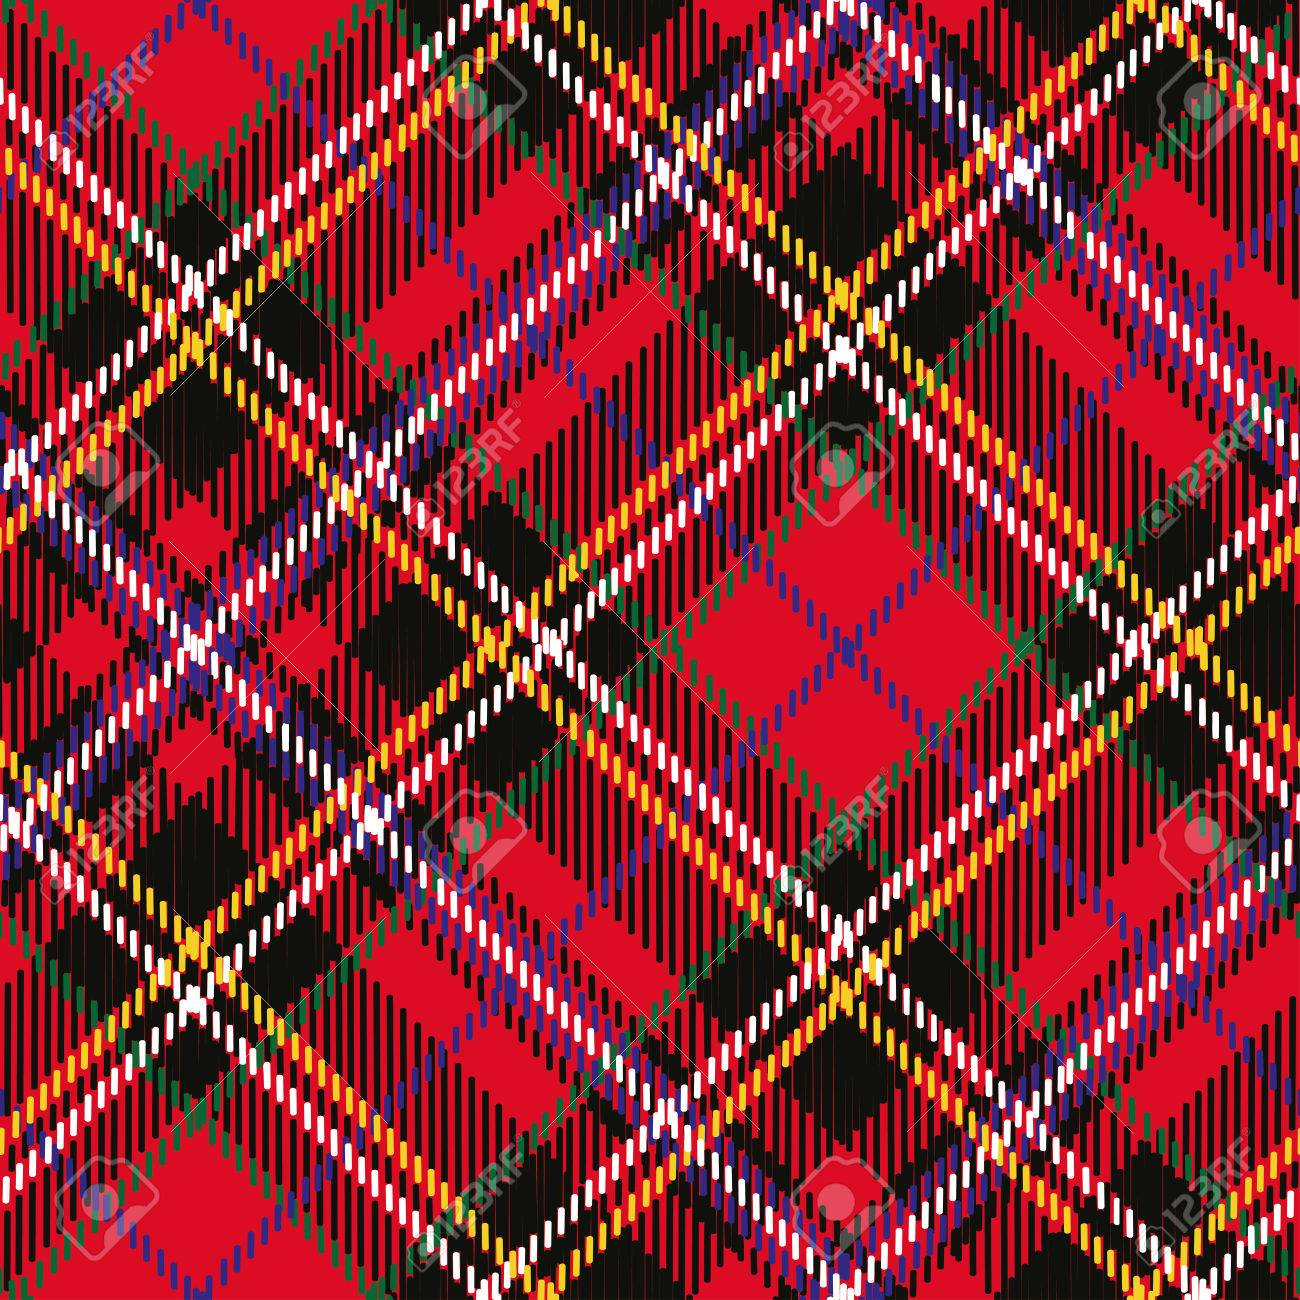 60108542 tartan plaid seamless pattern diagonal background wallpaper wrapping paper and textile retro style f